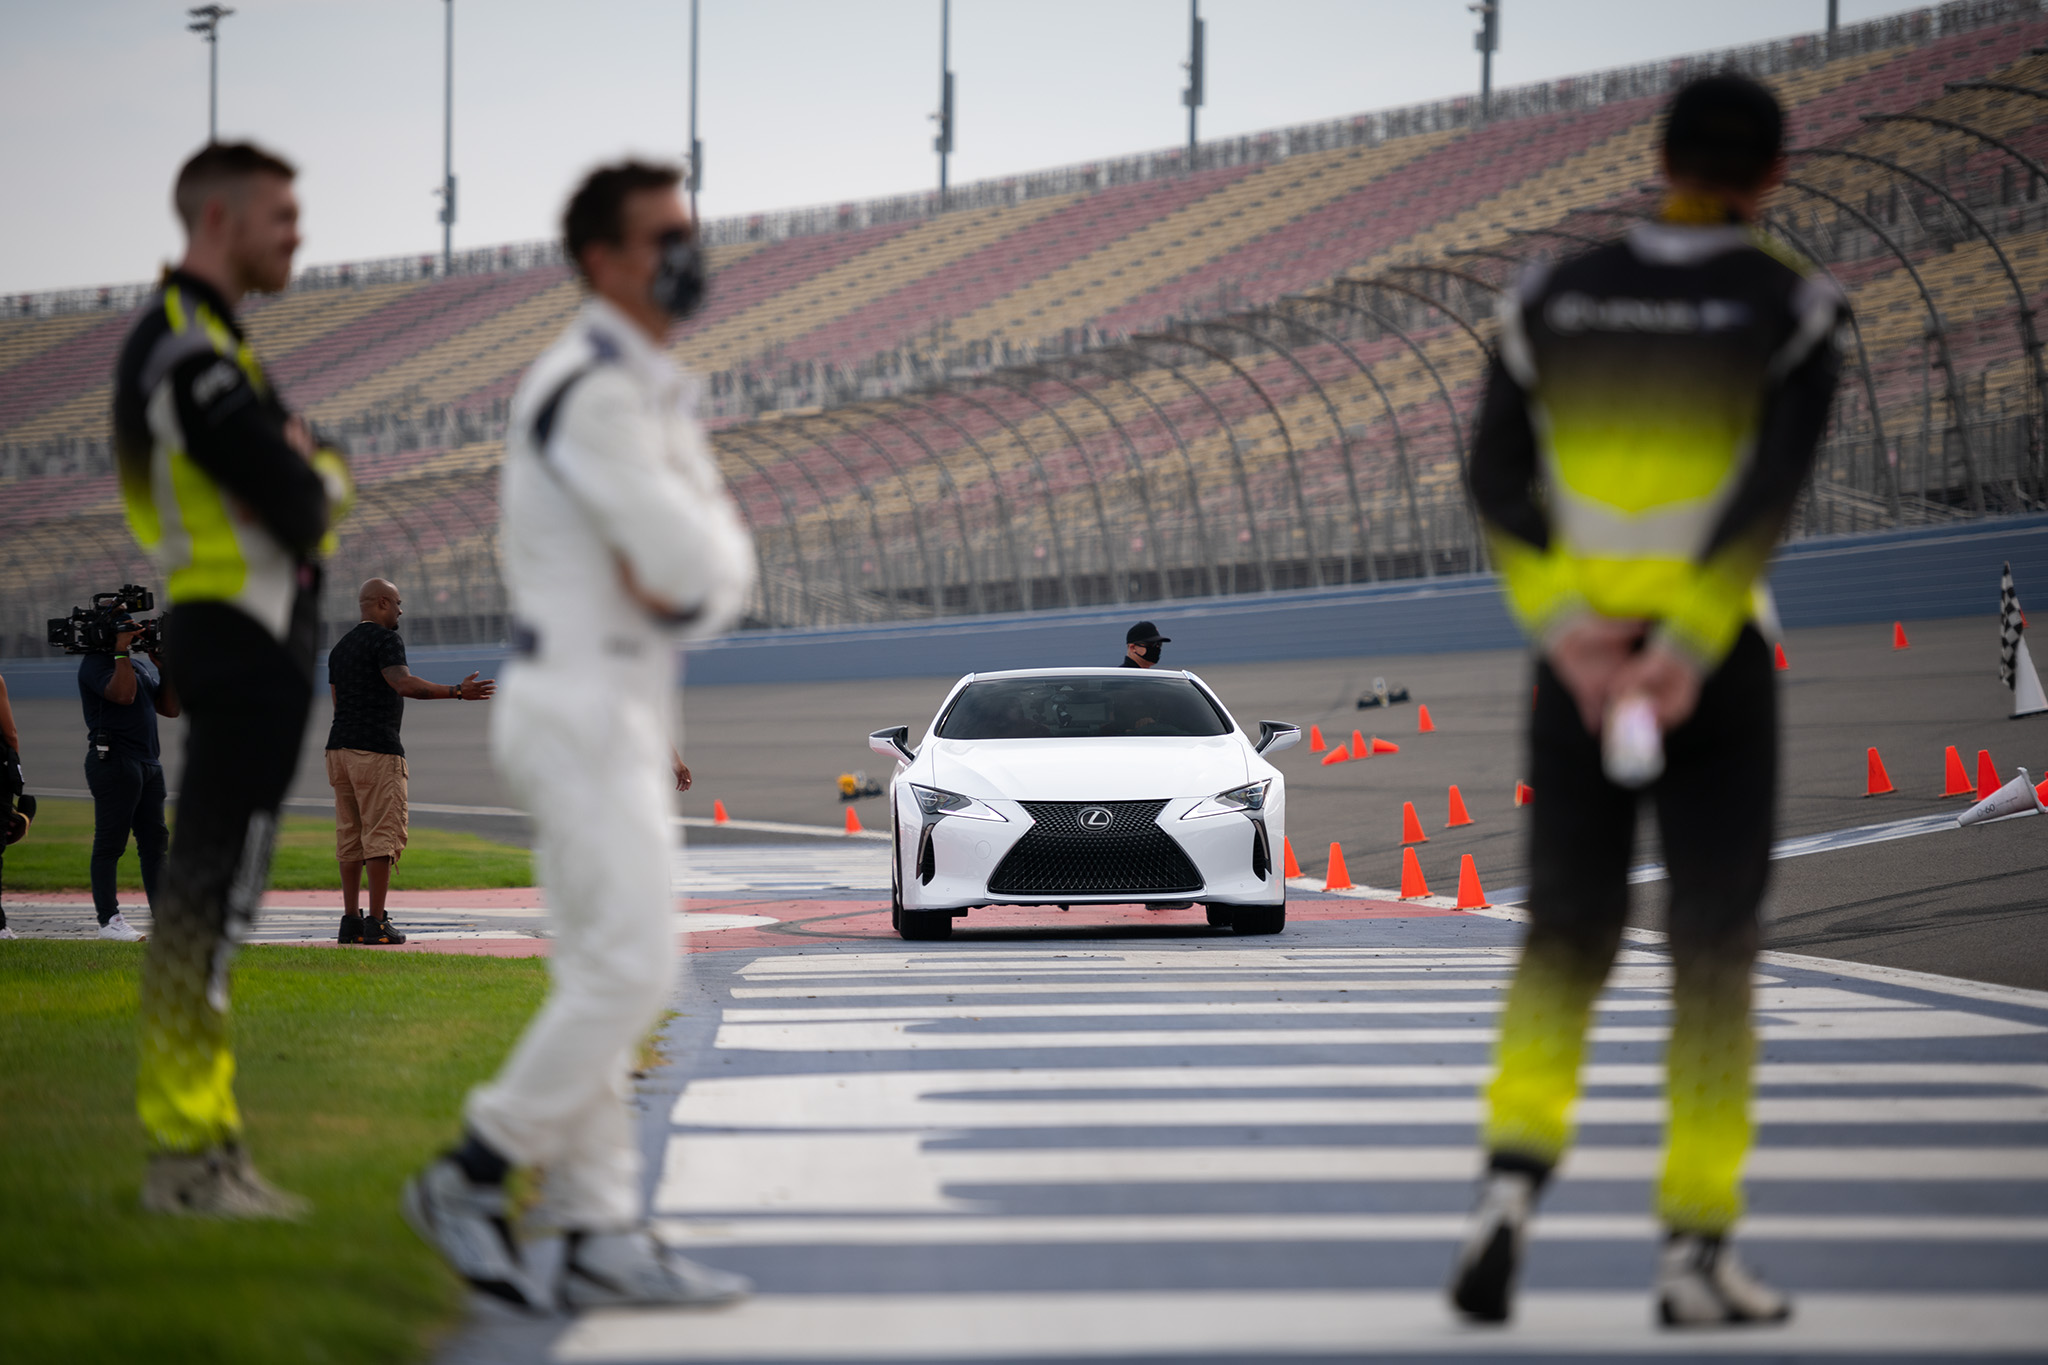 Lexus LC 500 0 to 60 campaign at Auto Club Speedway Fontana, with driving instructors Scott Pruett, Townsend Bell and Jack Hawksworth, motorsports photography by Luke Munnell